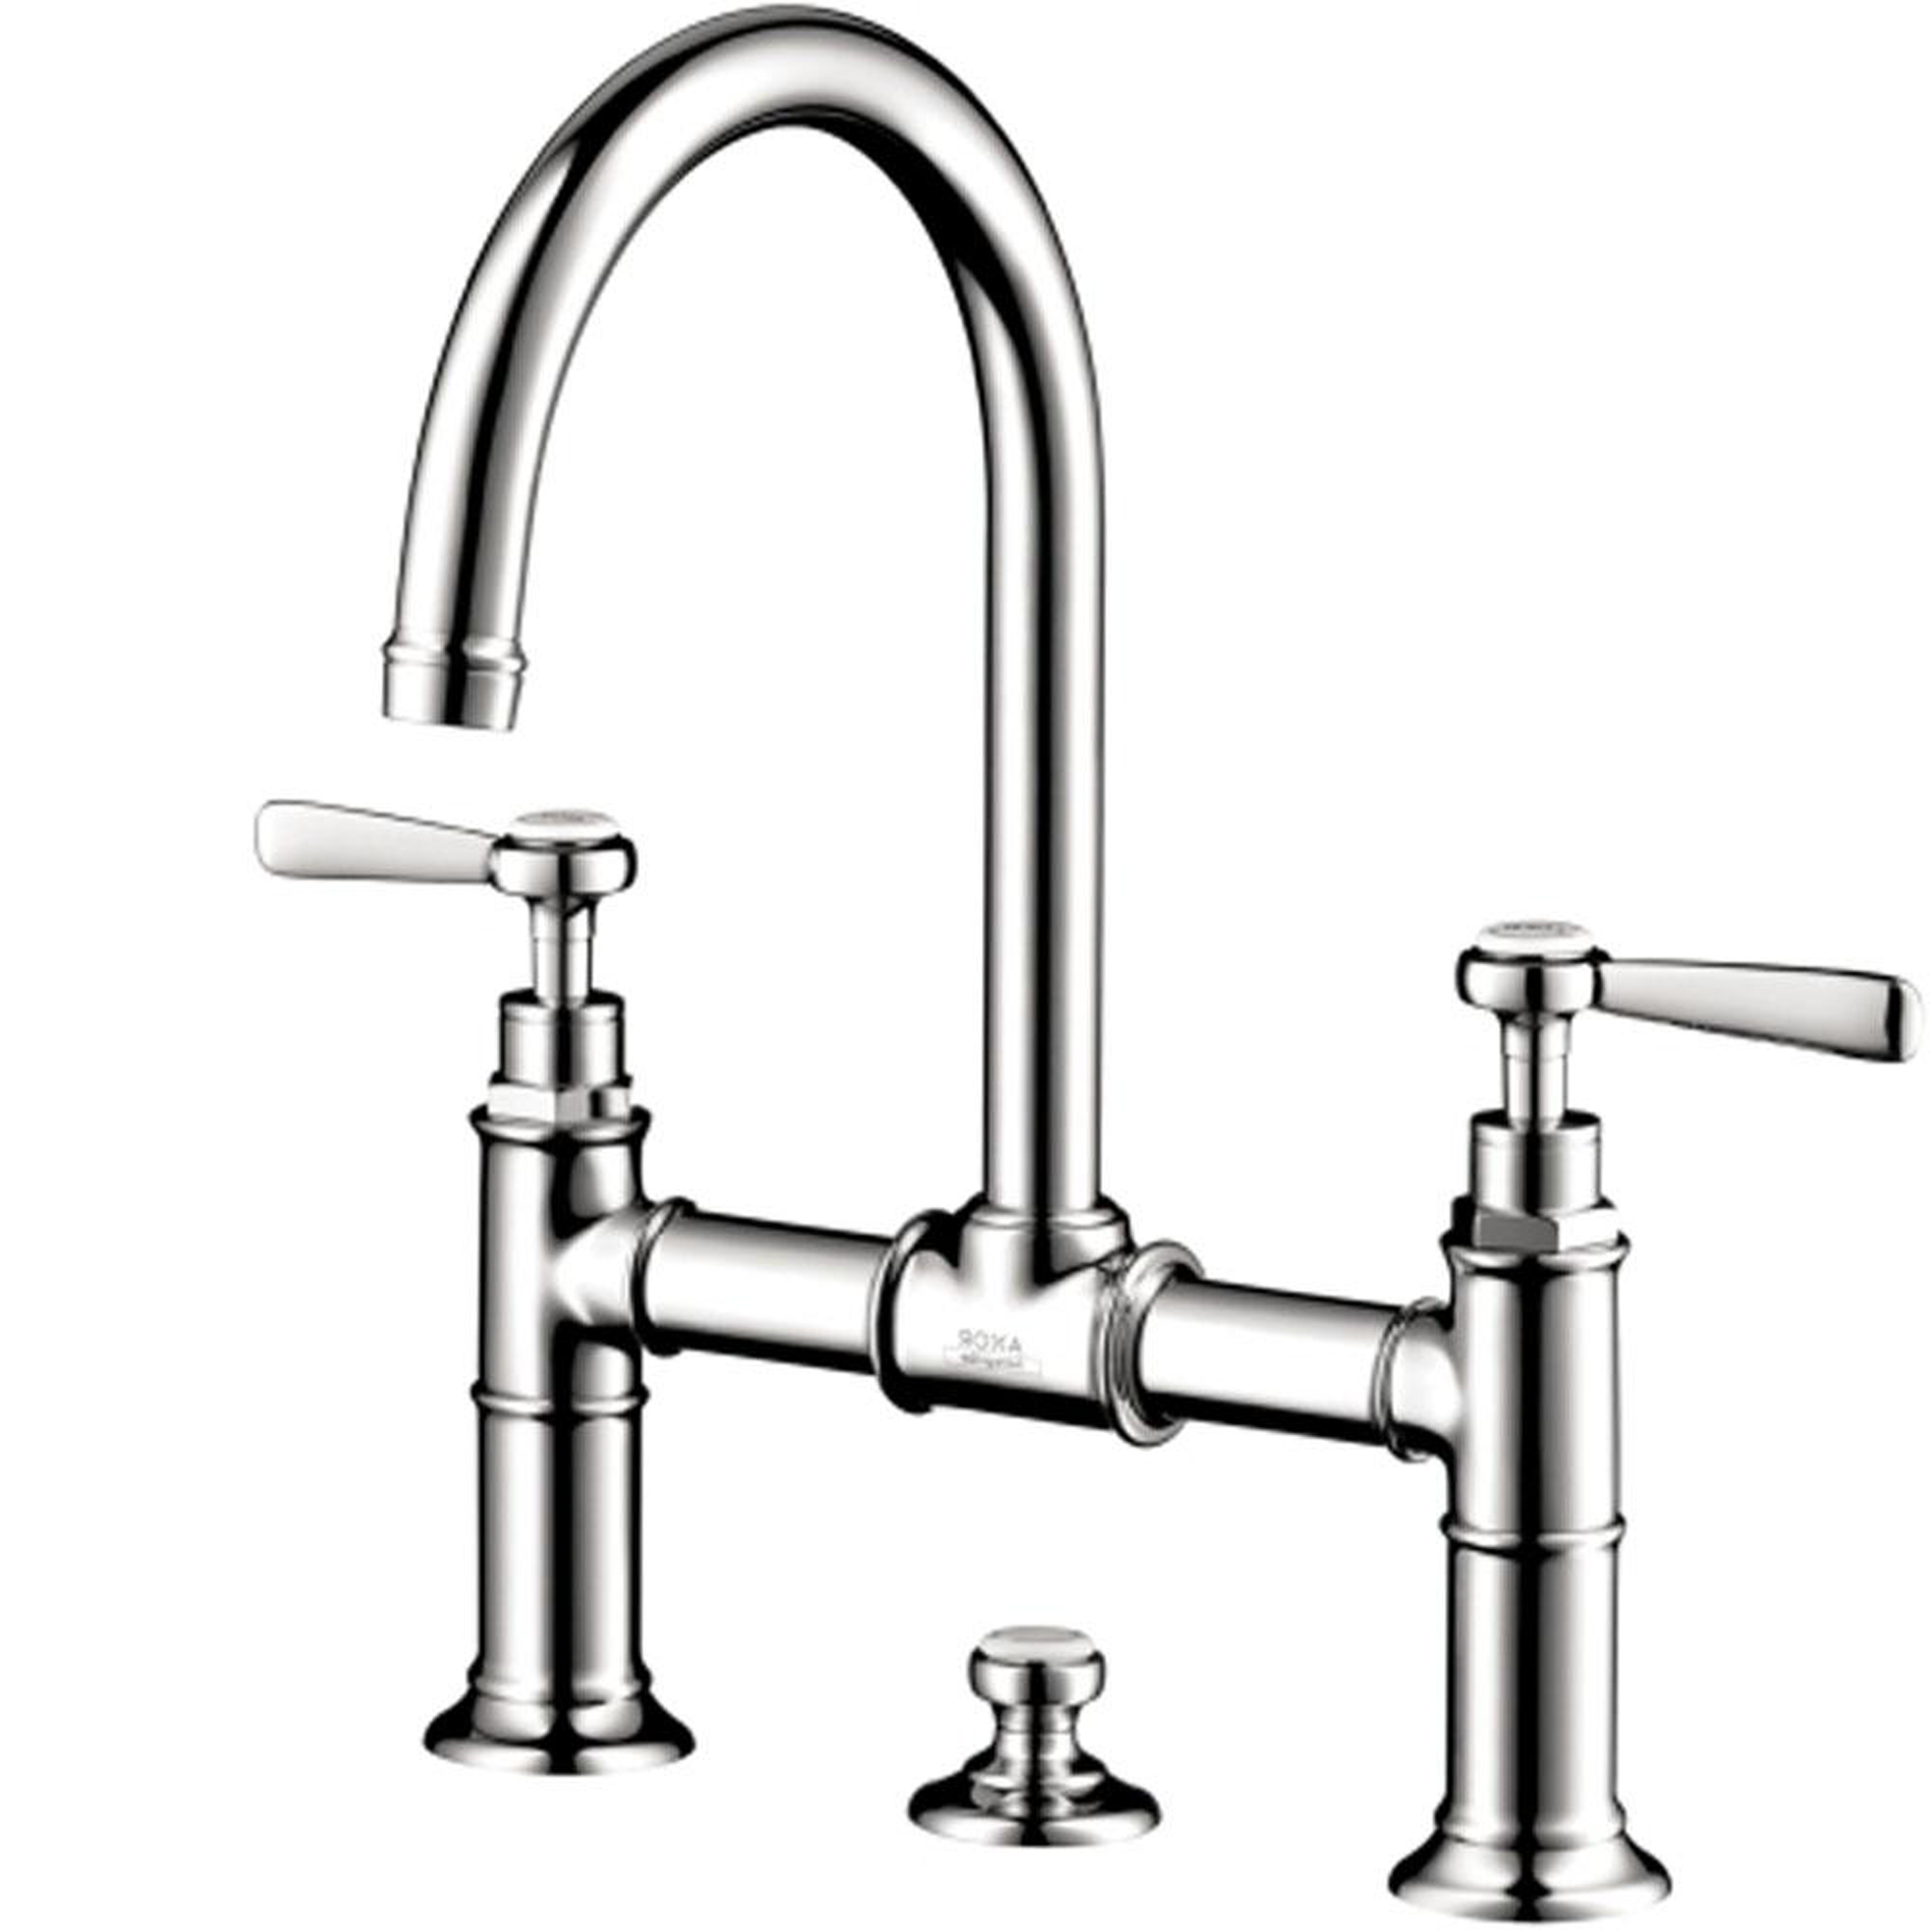 Kitchen Hansgrohe Kitchen Faucet Design Idea In Silver Dazzling Hansgrohe Kitchen Faucet Design Ideas (View 23 of 38)